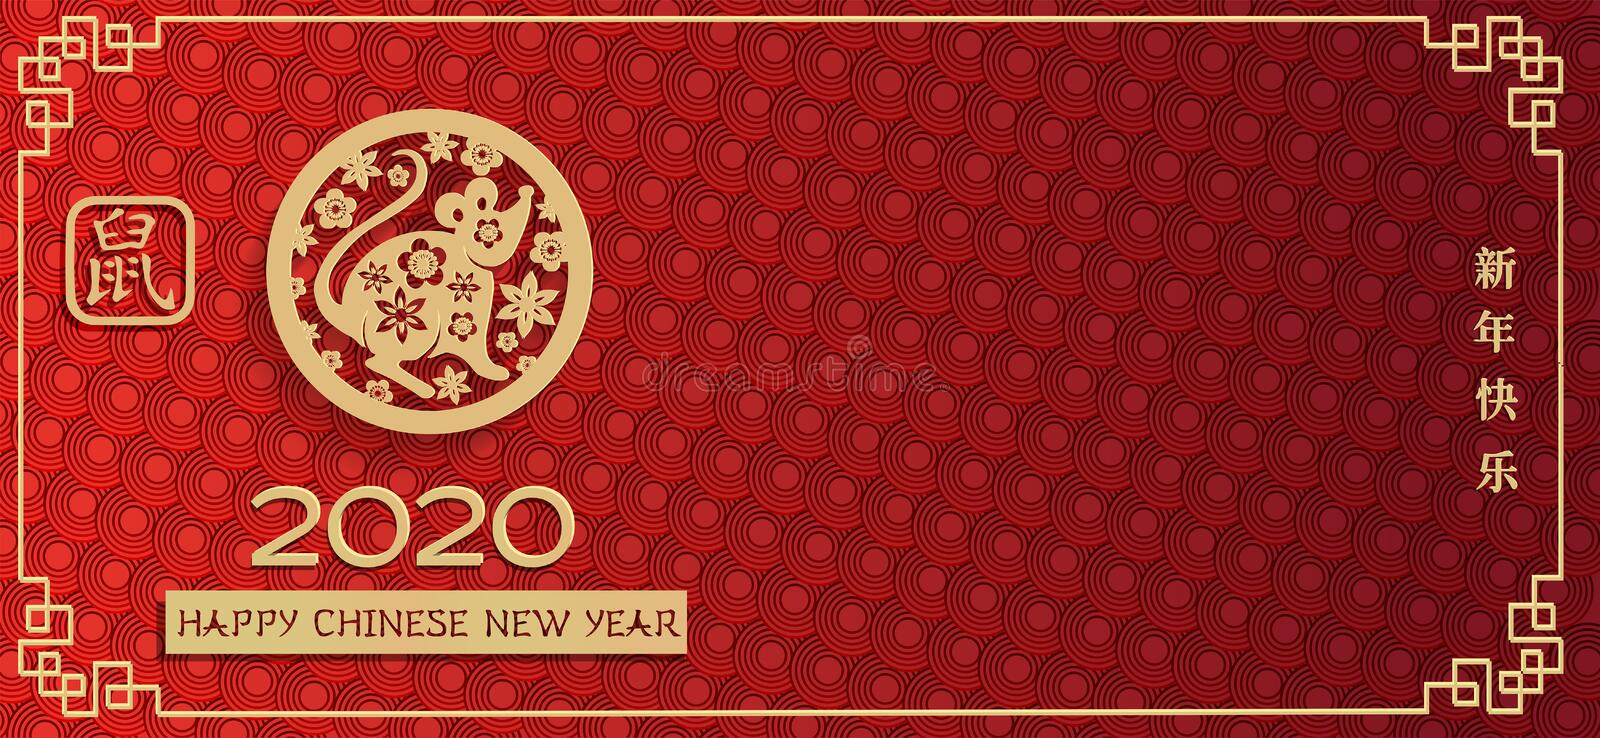 Horizontal 2020 Chinese New Year greeting card with golden Rat in circe with flowers. Gold hieroglyphs in traditional. Chinese frame on red background stock illustration